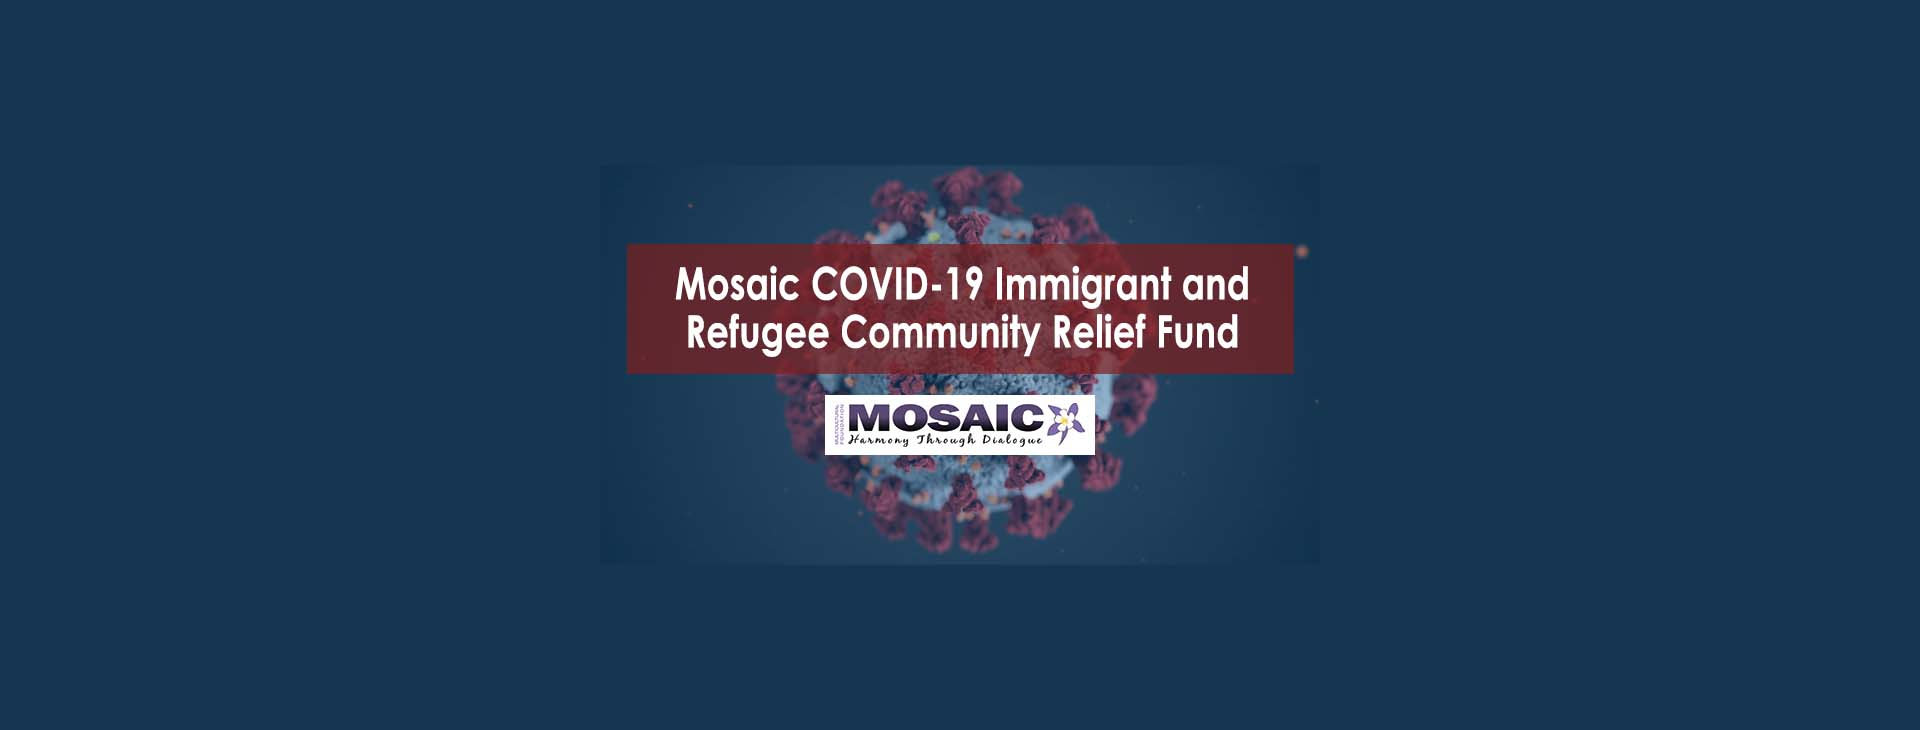 Mosaic COVID-19 Immigrant and Refugee Community Relief Fund